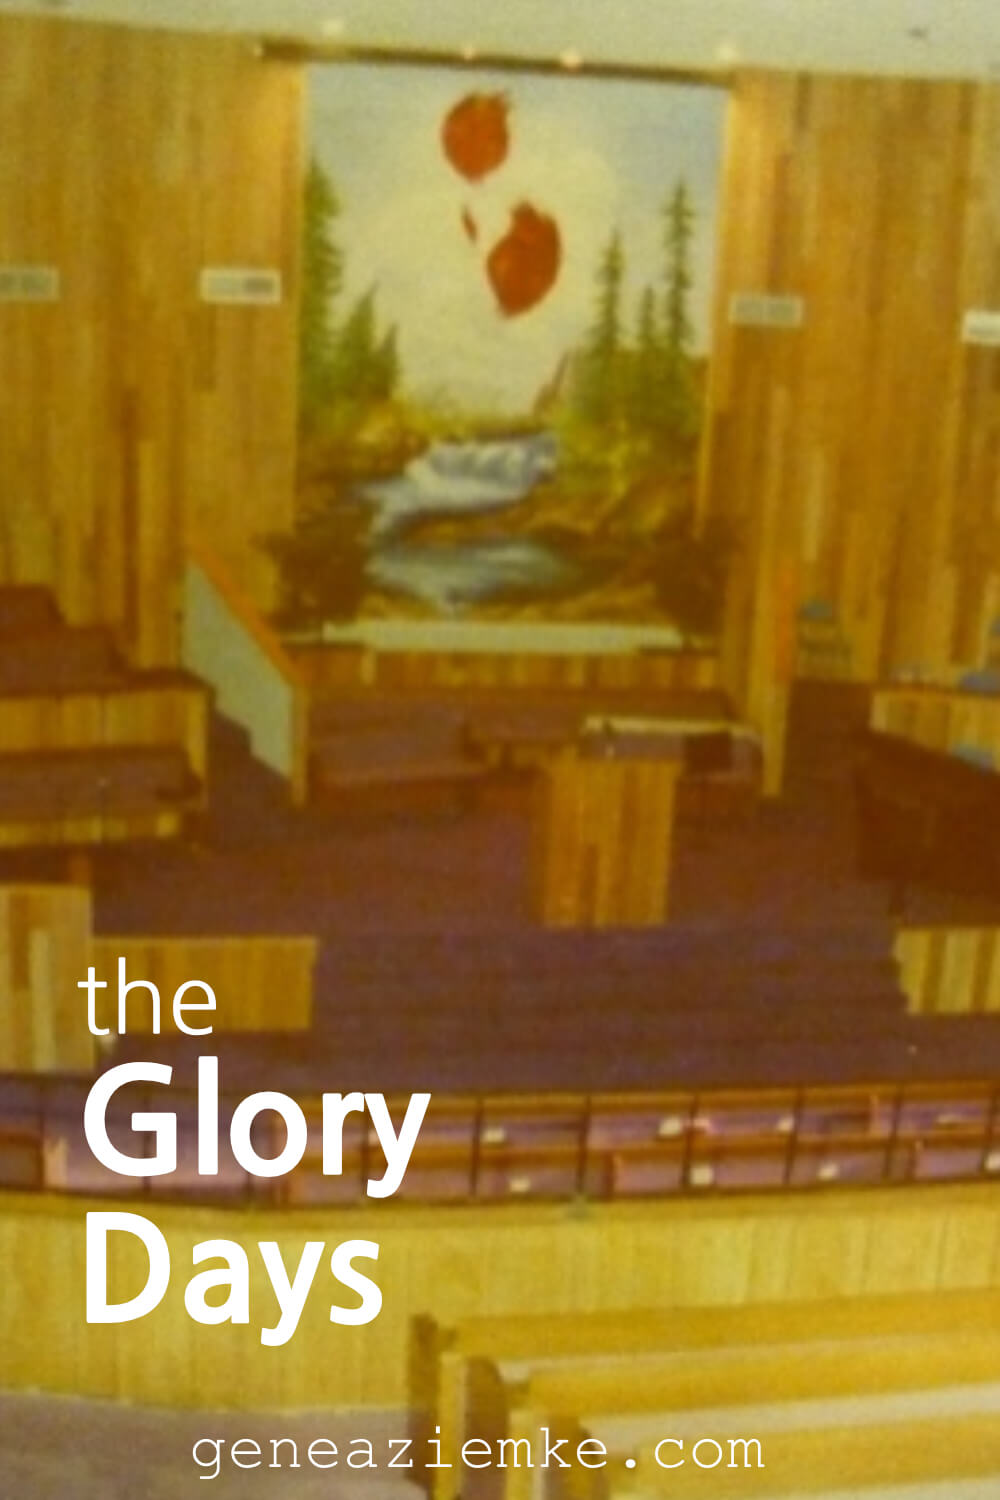 The Glory Days - World Of Pentecost - Puyallup